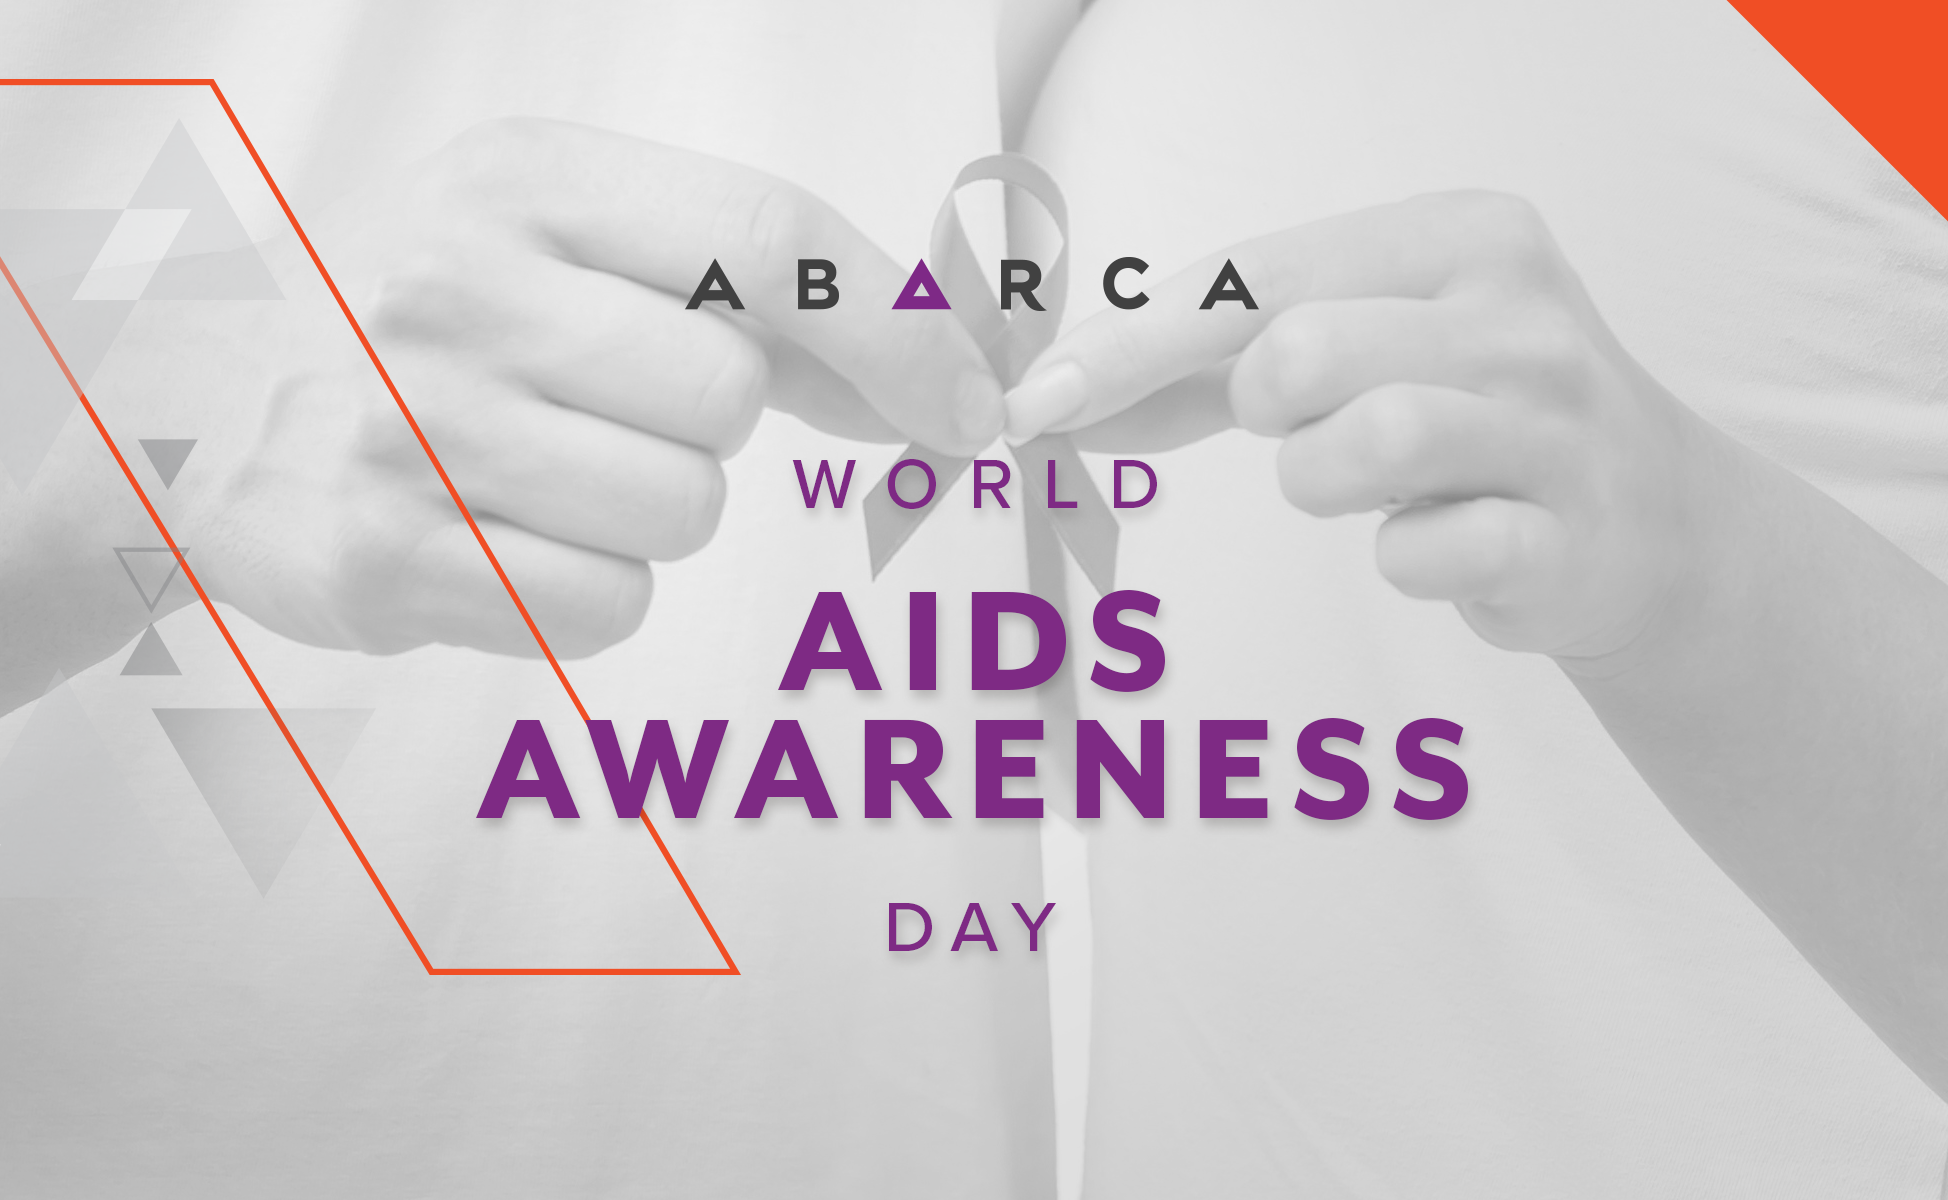 Abarca joins the fight to end the HIV/AIDS epidemic community by community